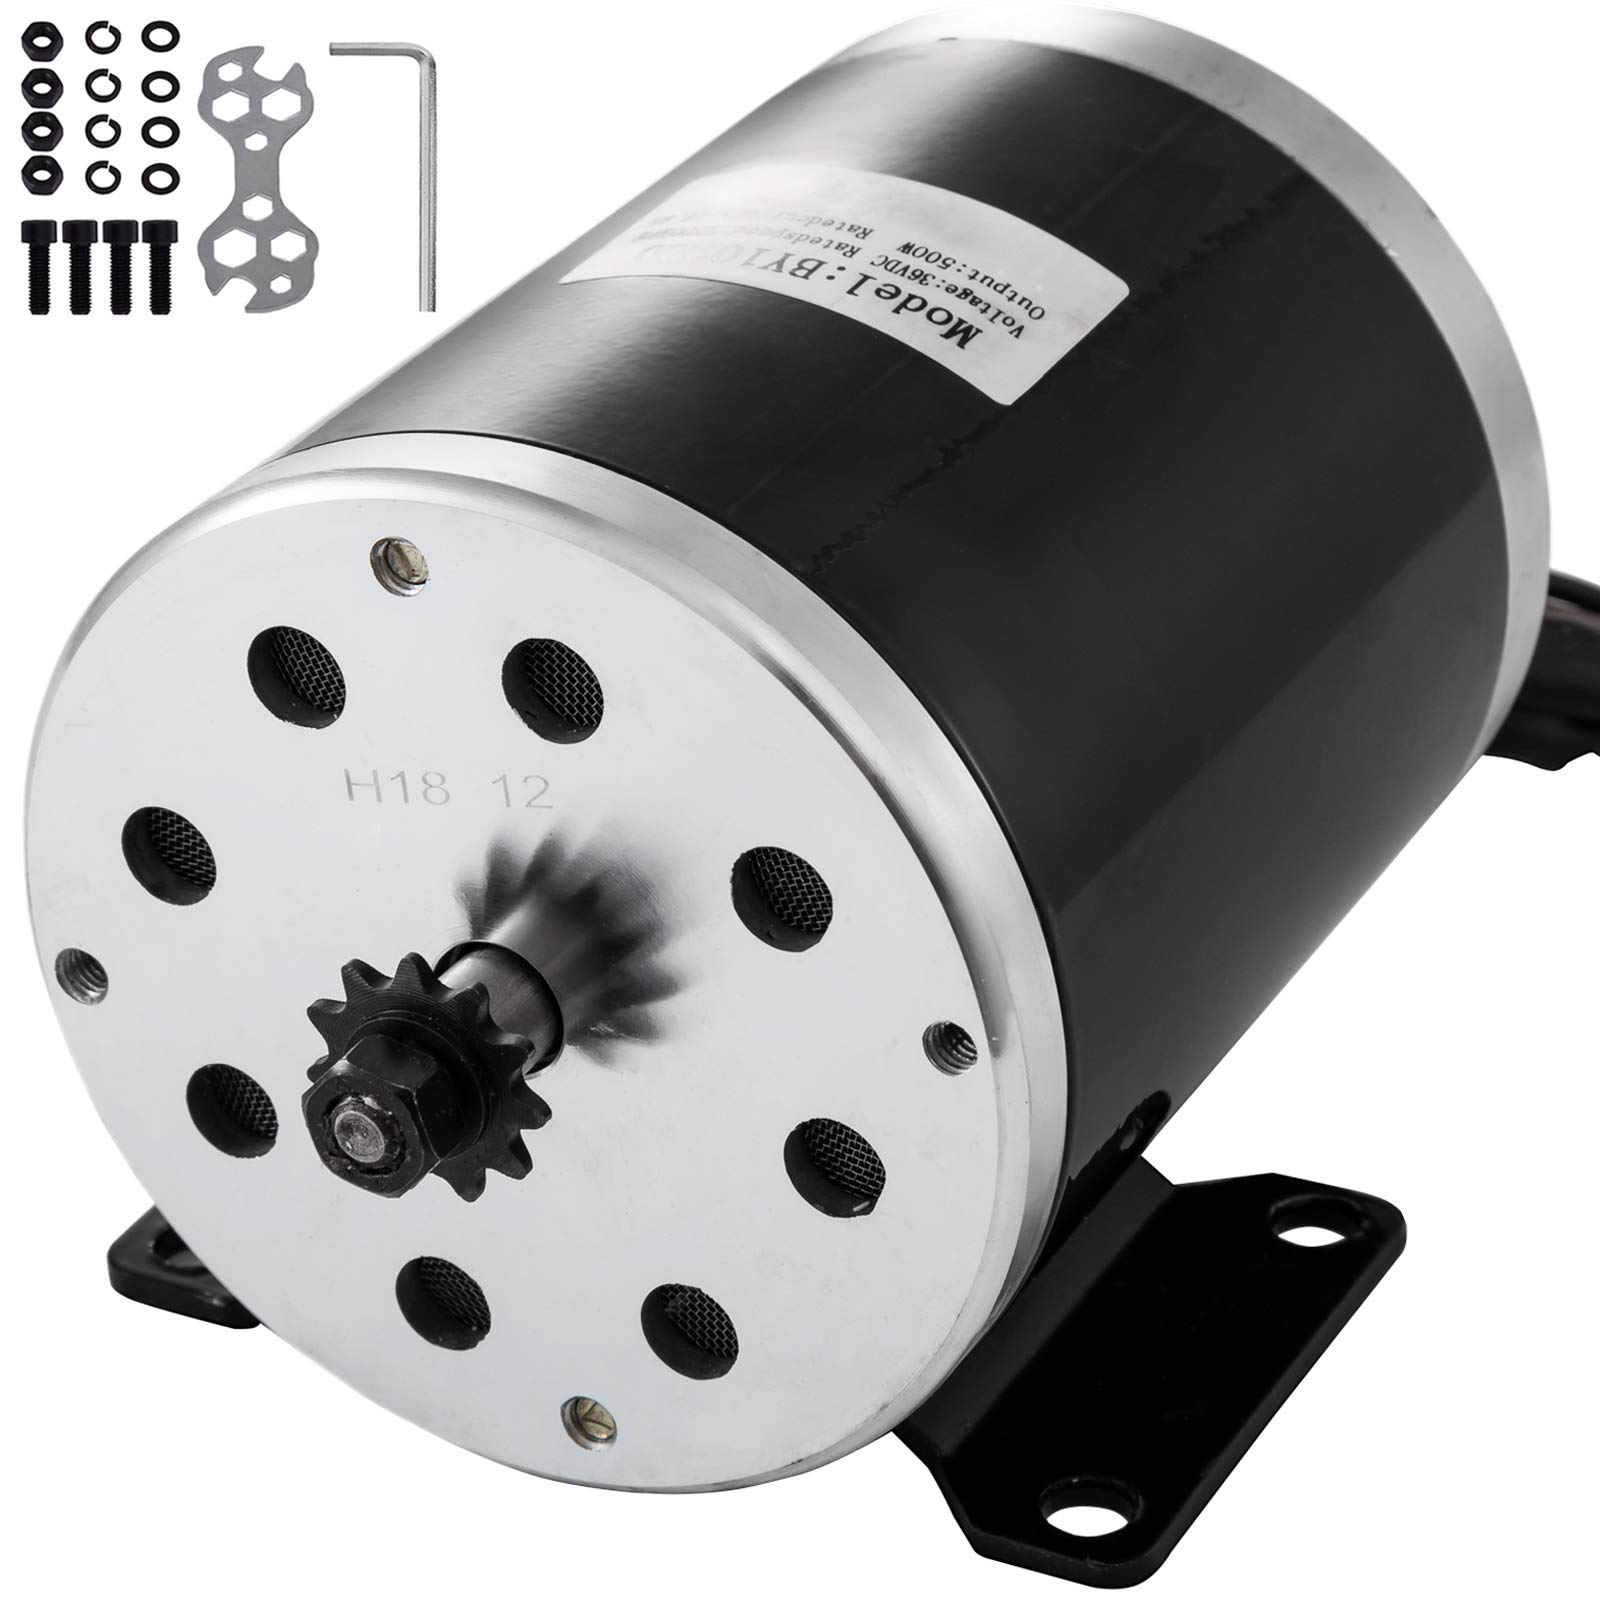 Mophorn Electric Brushed DC Motor 36V 500W with 11 Tooth 25 Chain Sprocket and Mounting Bracket for Go Karts Scooters & E-Bike by Mophorn